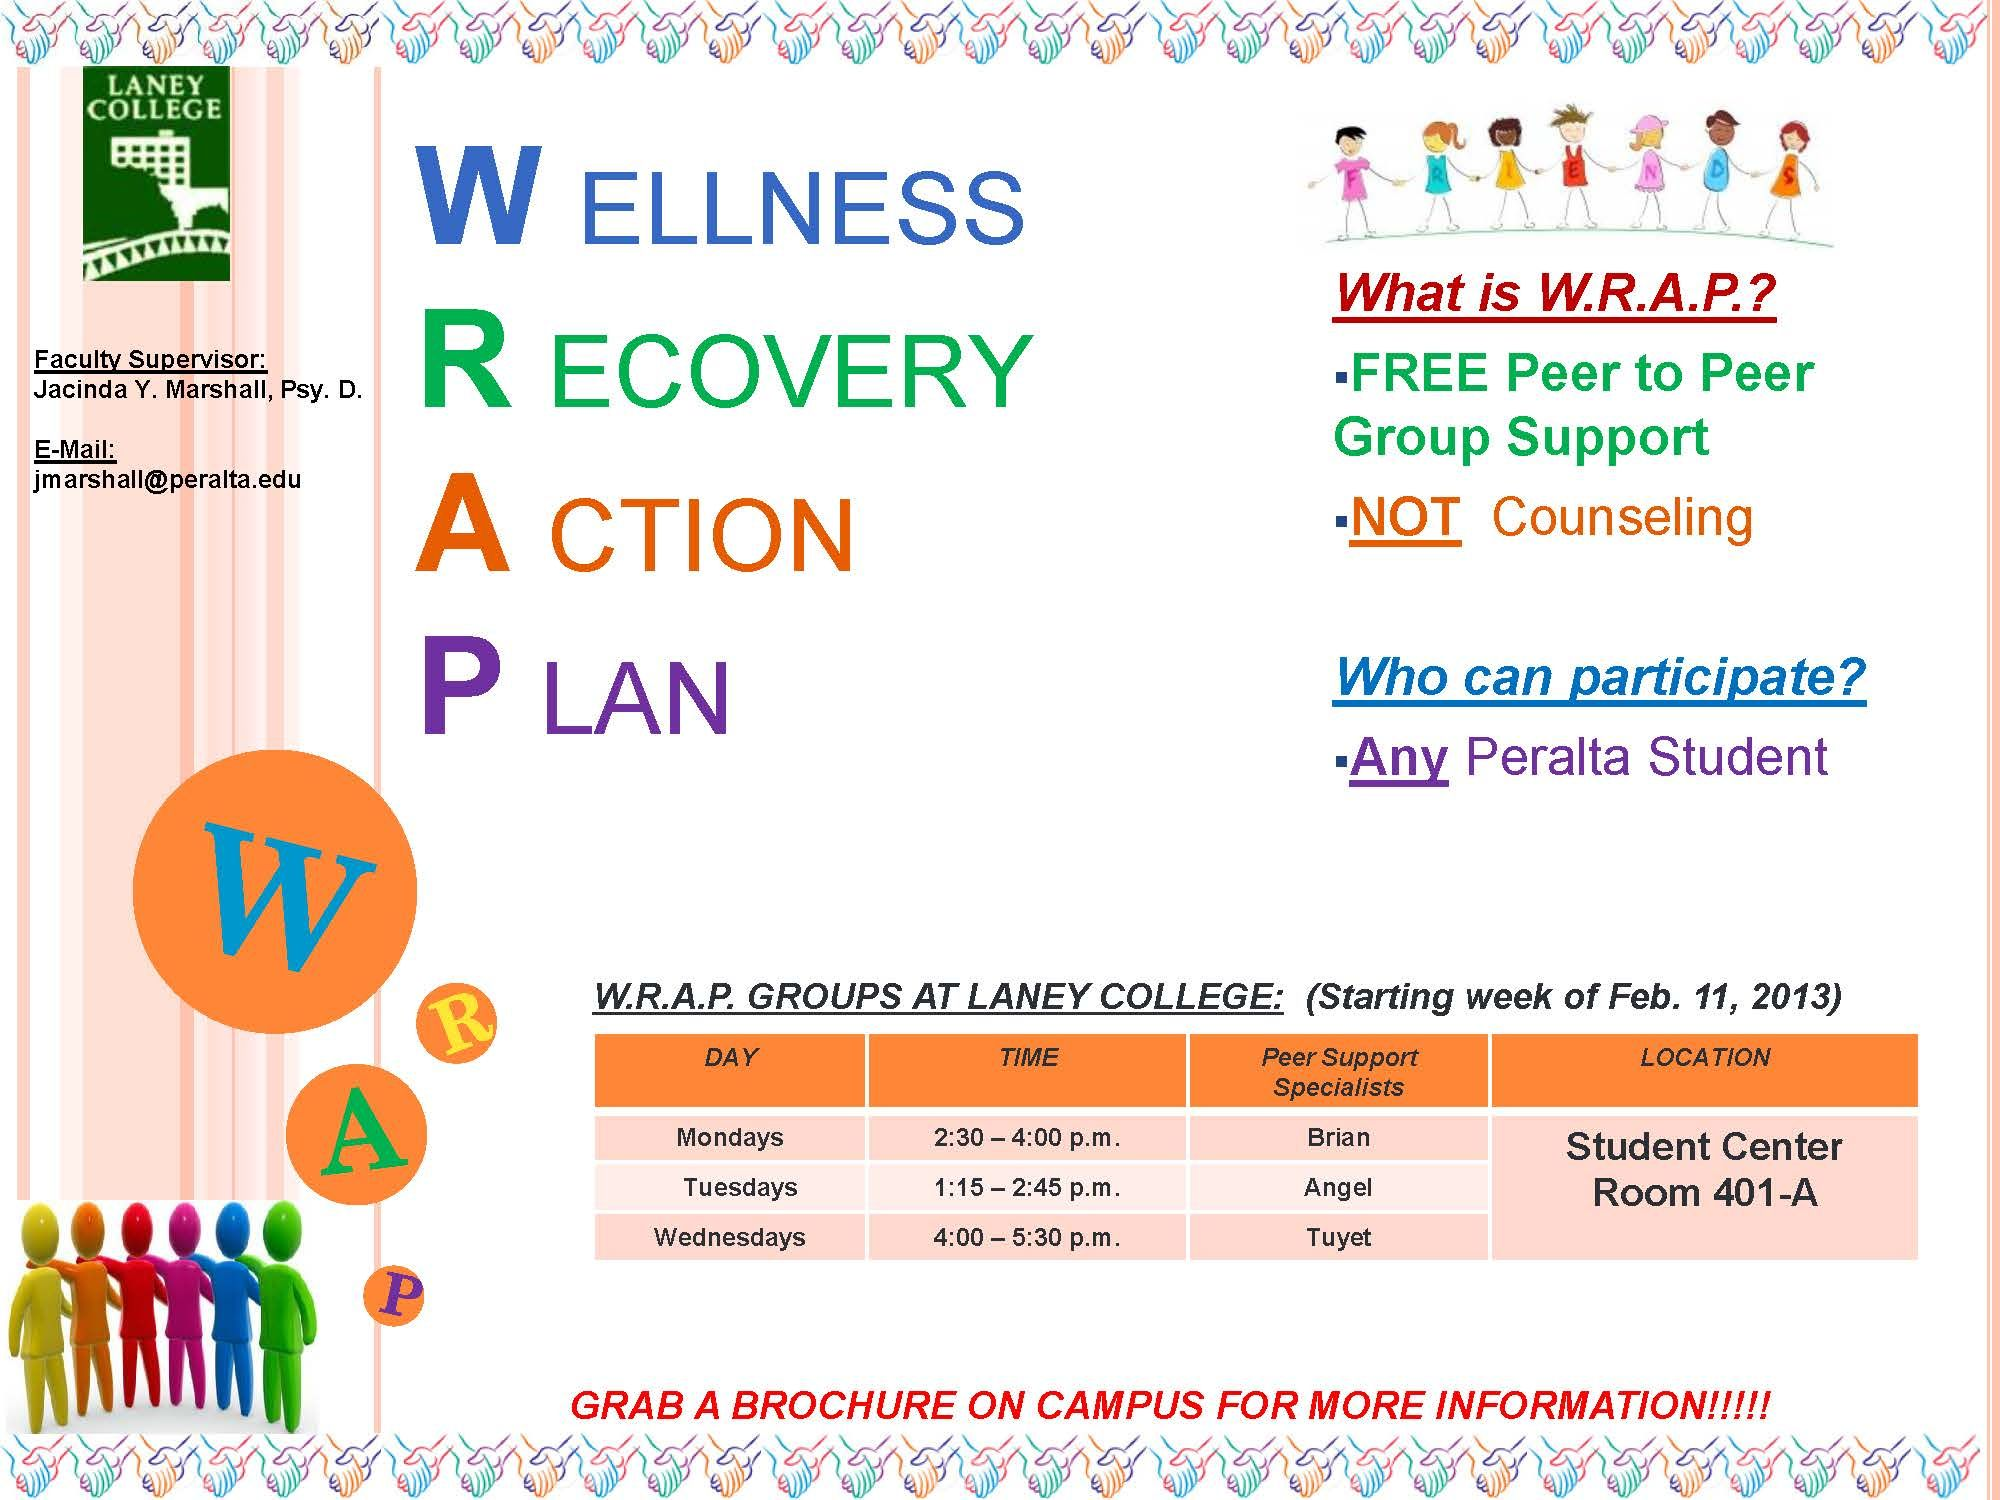 Wellness Recovery Action Plan Worksheets - Pichaglobal